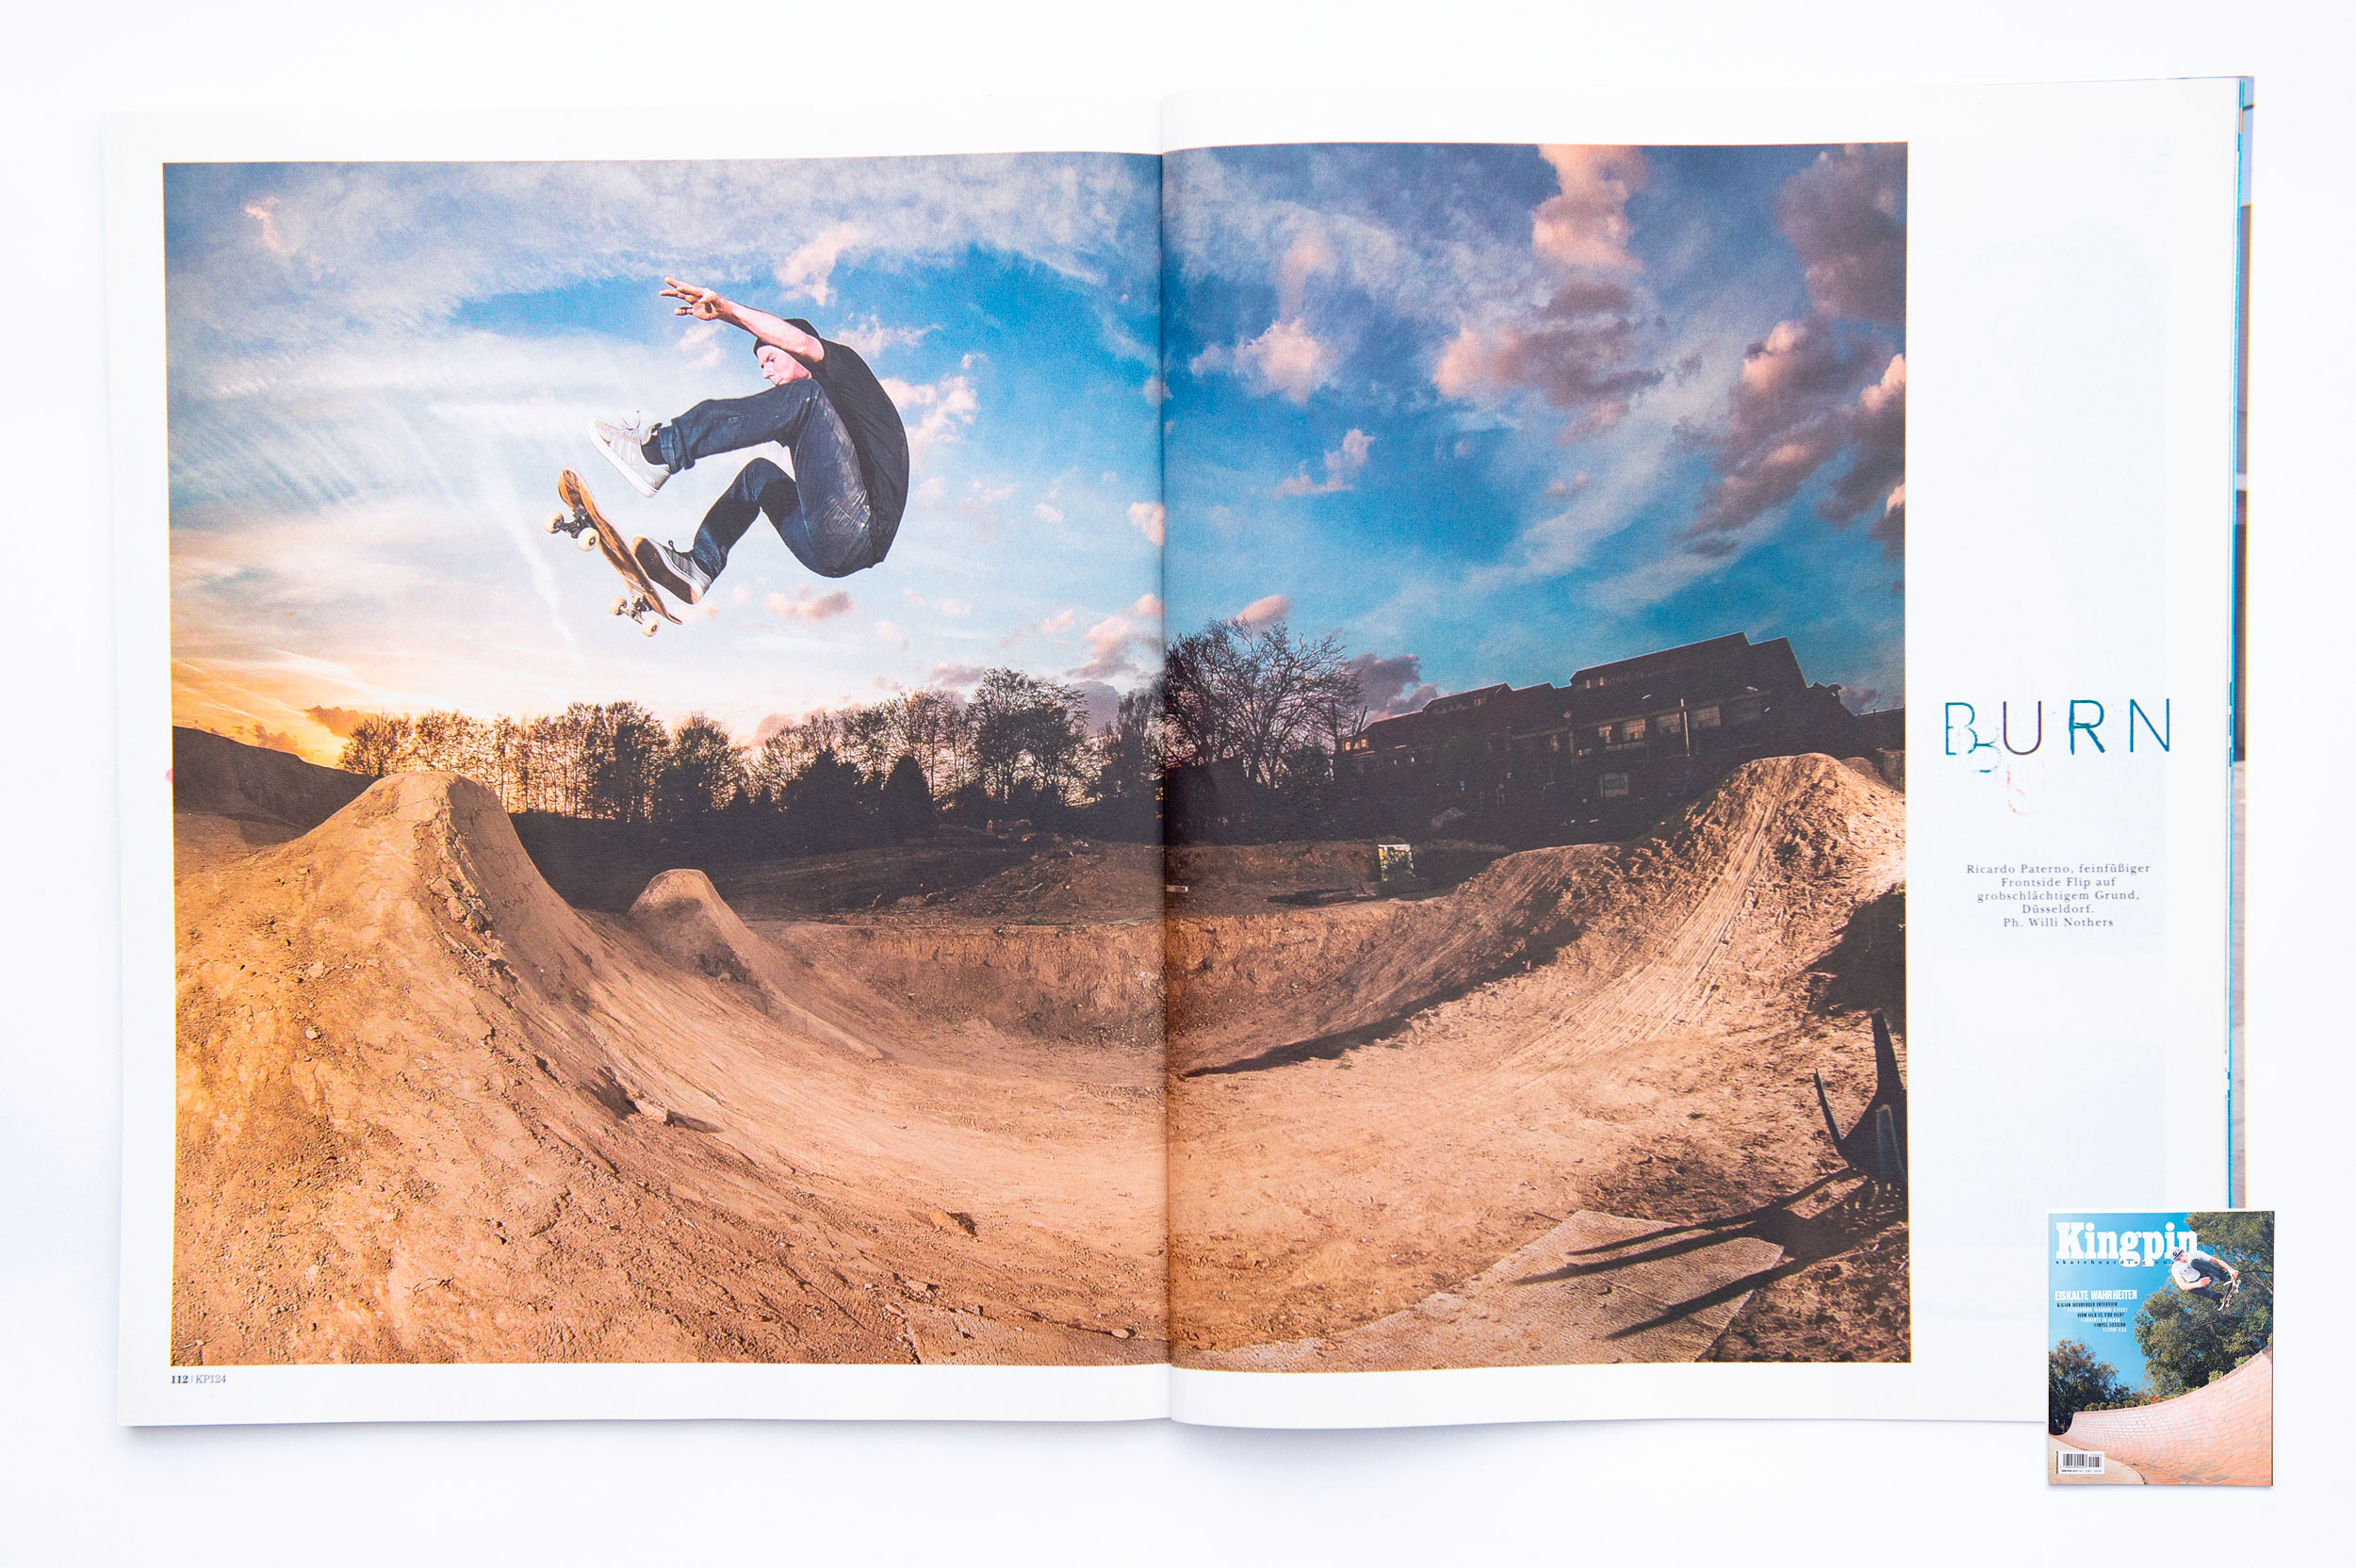 Reference, Ricardo Paterno, Free Skatemag, Willi Nothers